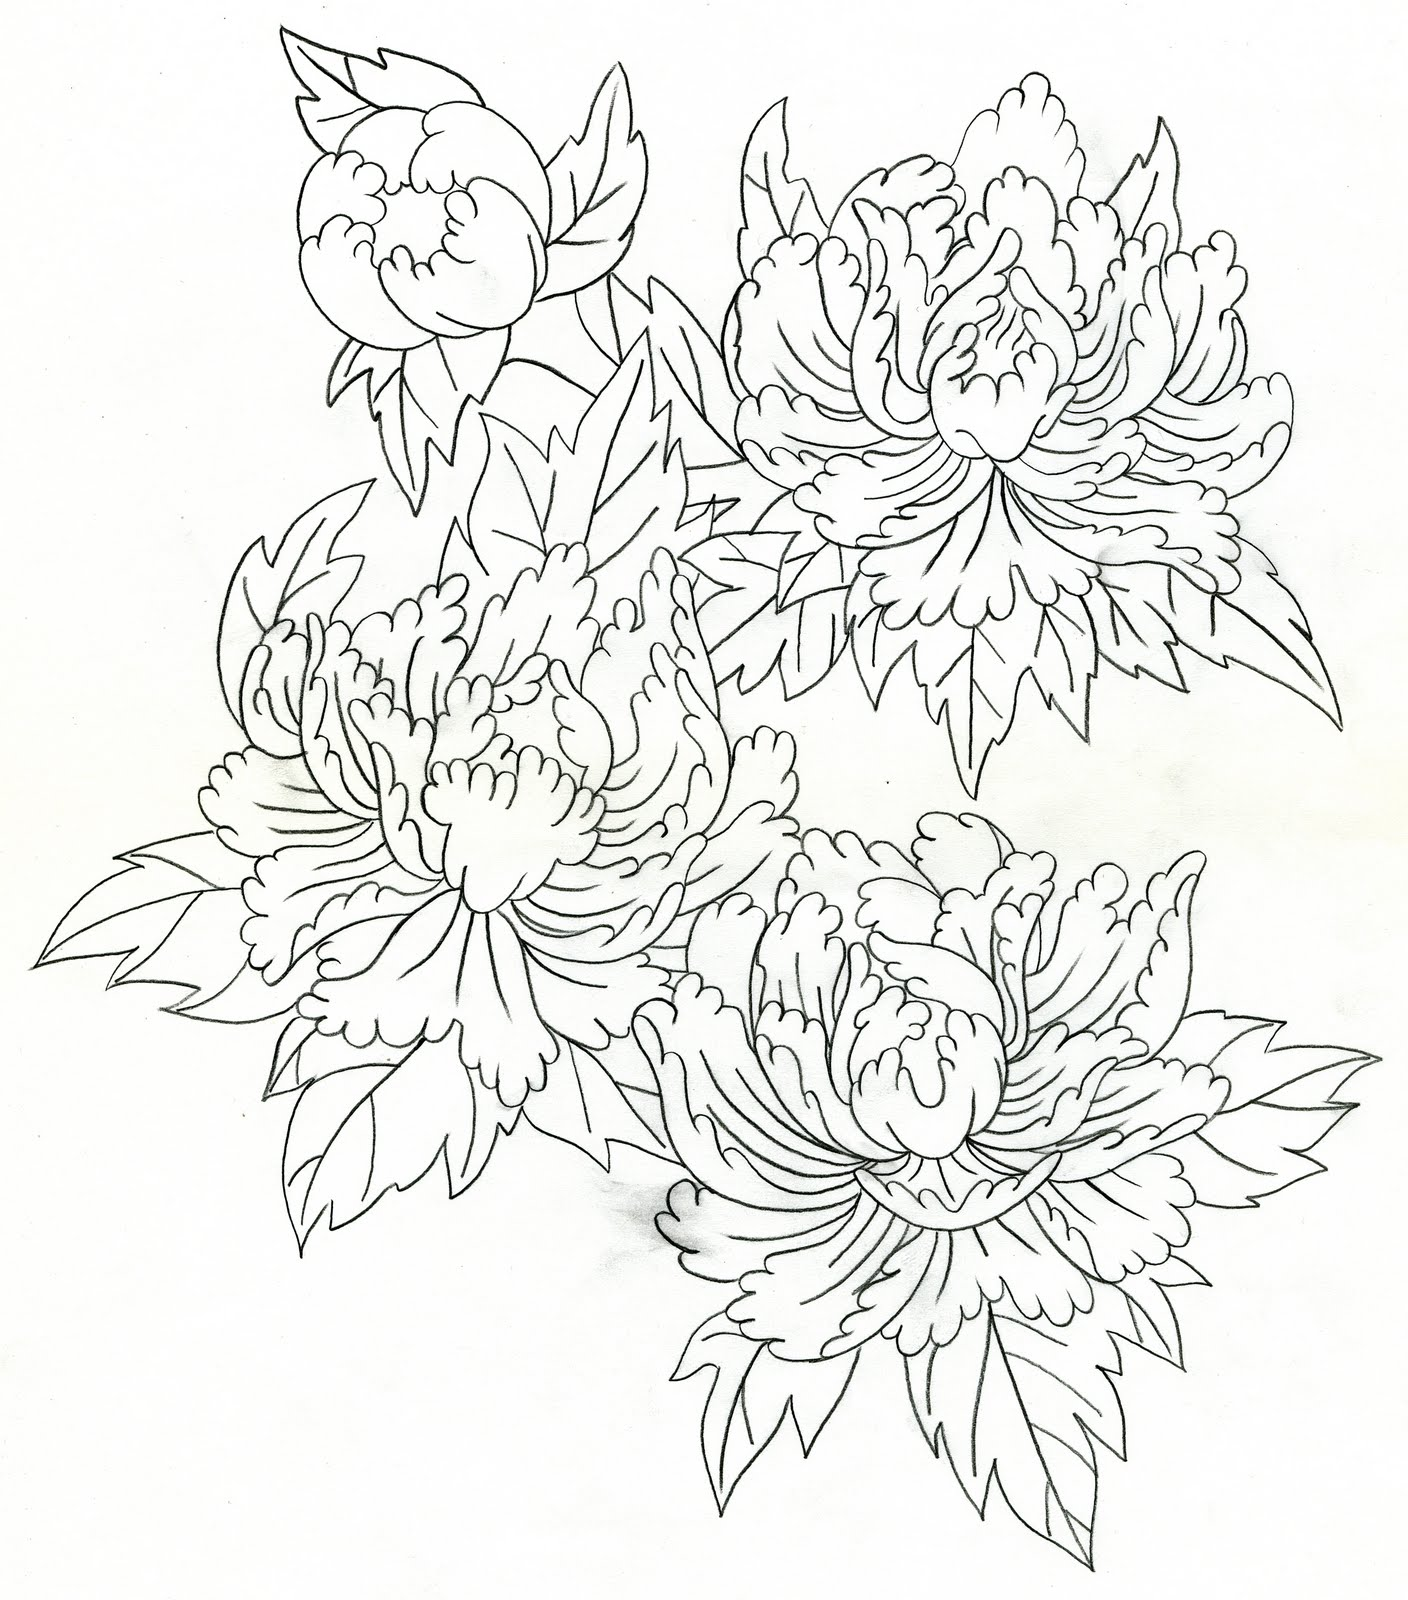 Mike's TATTOO design: April 2011